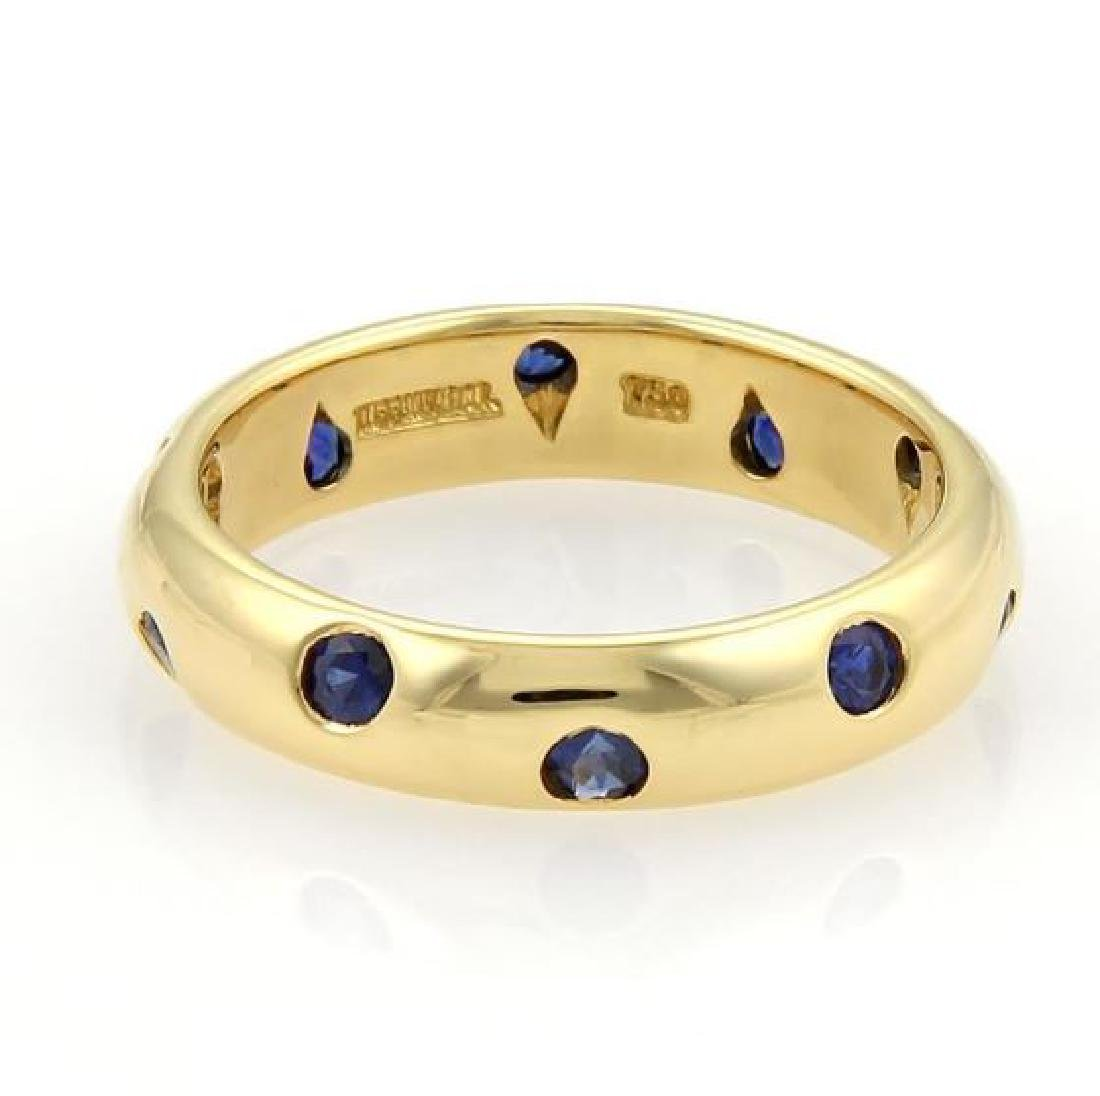 Tiffany & Co. Etoile Sapphire 18k Gold Dome Ring - 3